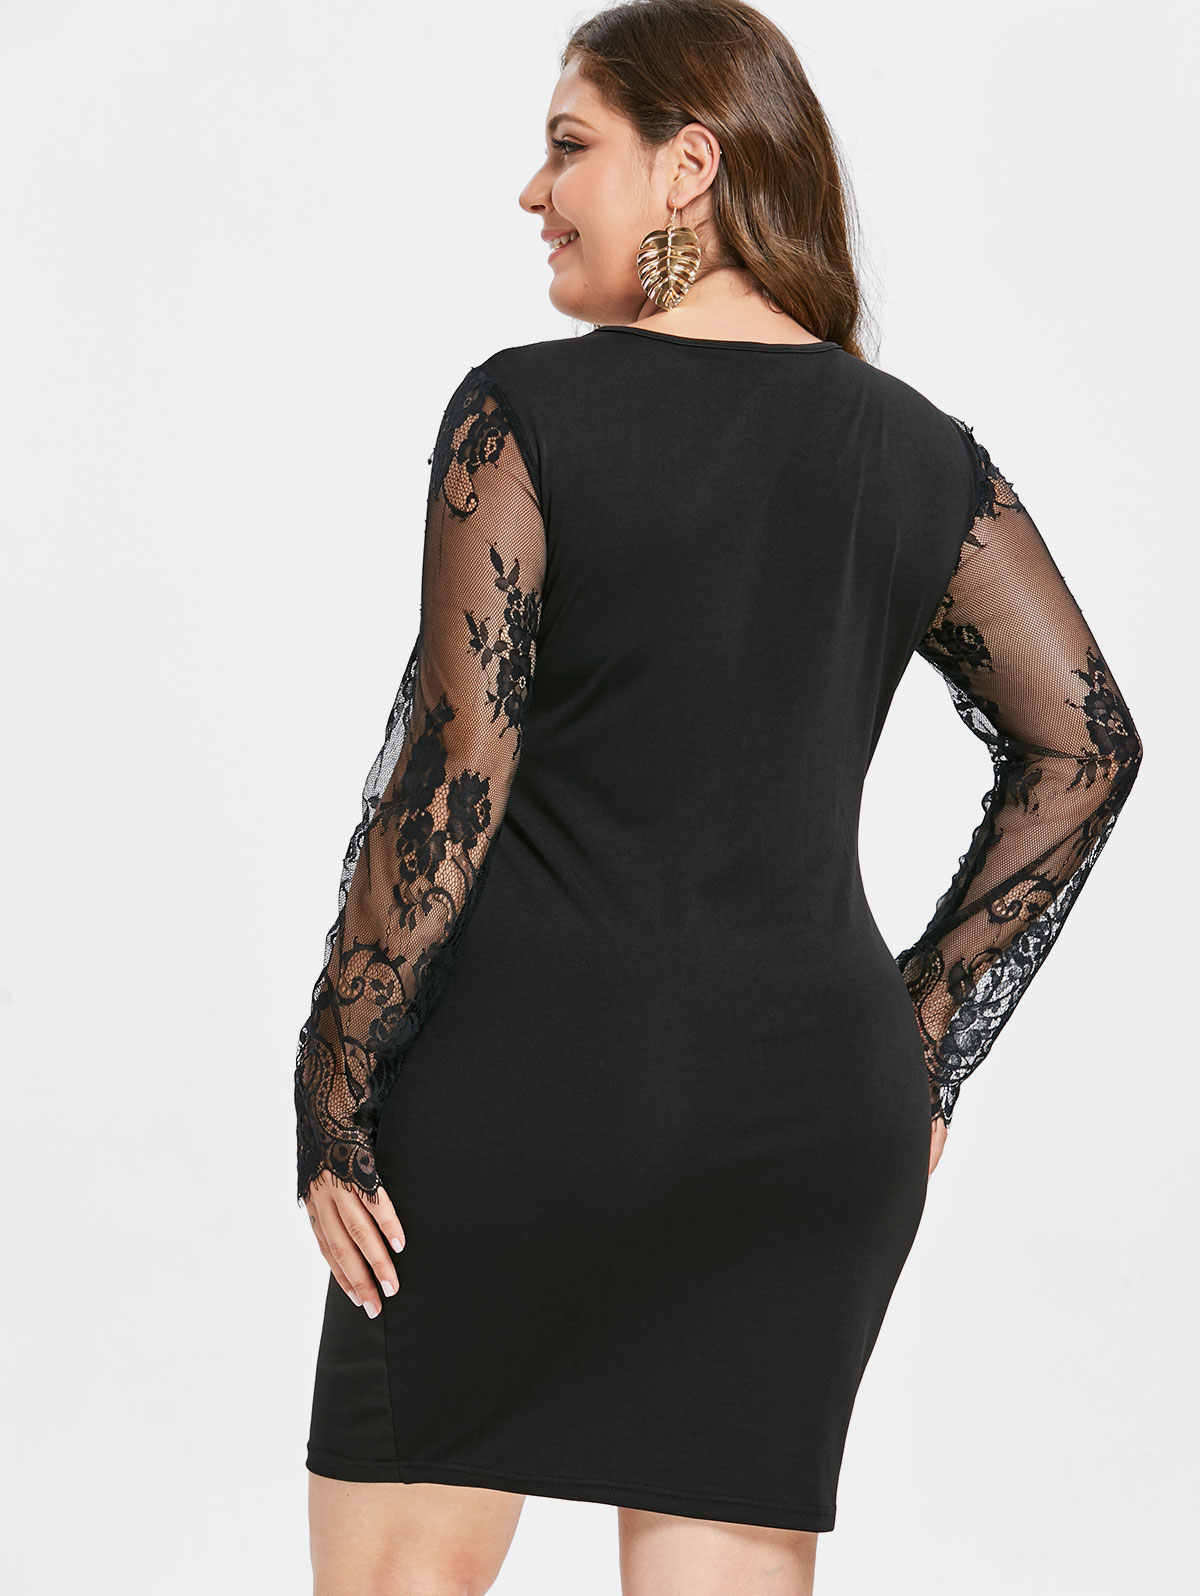 1a69a75894c ... Wipalo Plus Size 5XL Halter Sexy Night Club Wear Party Dresses Summer  2018 Lace Up Backless ...